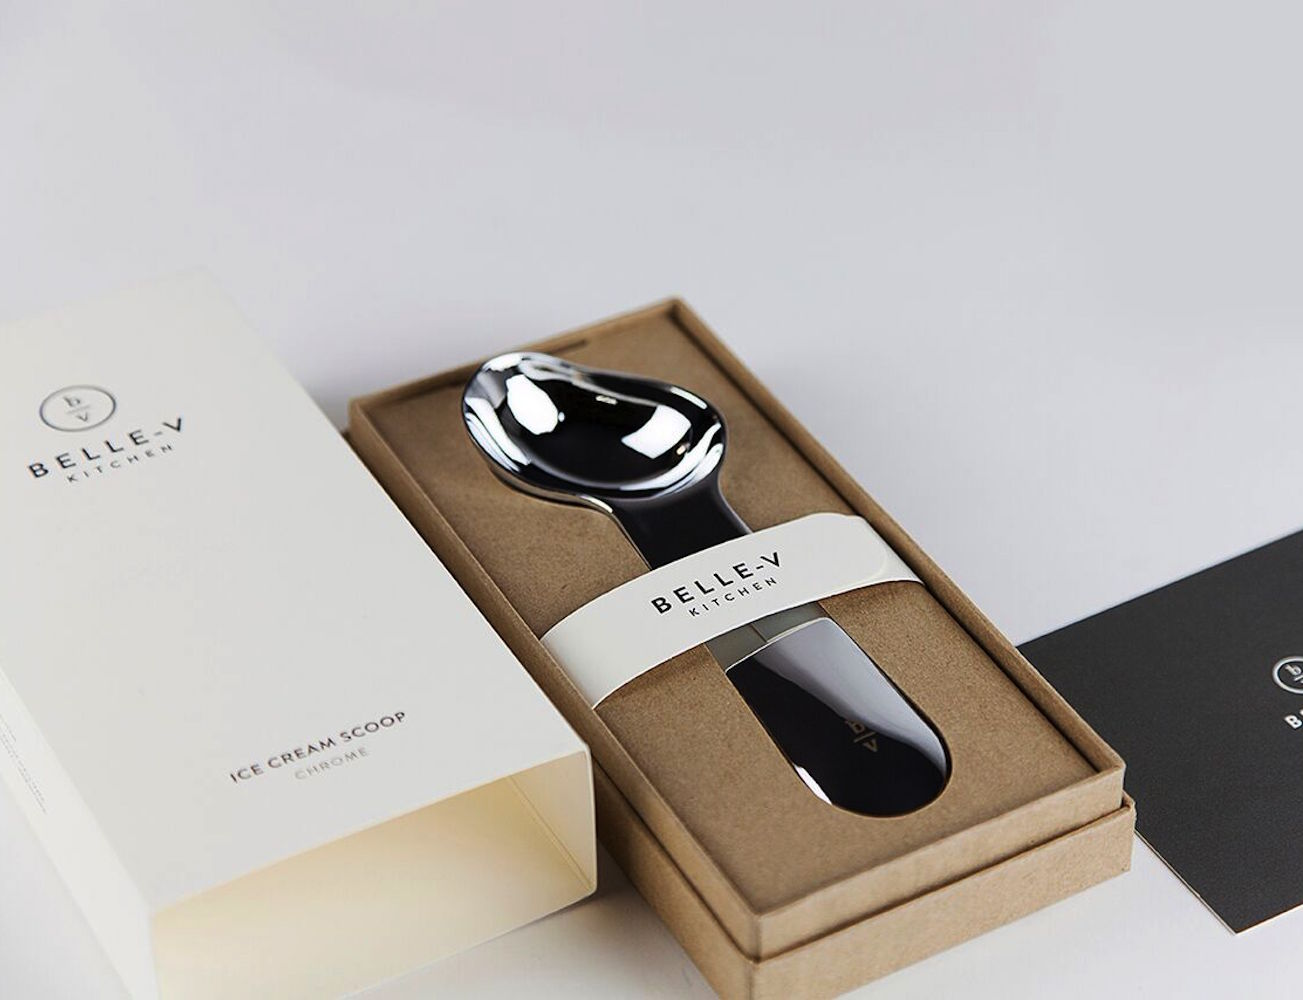 Hand-Polished Ice Cream Scoop by Belle-V Kitchen